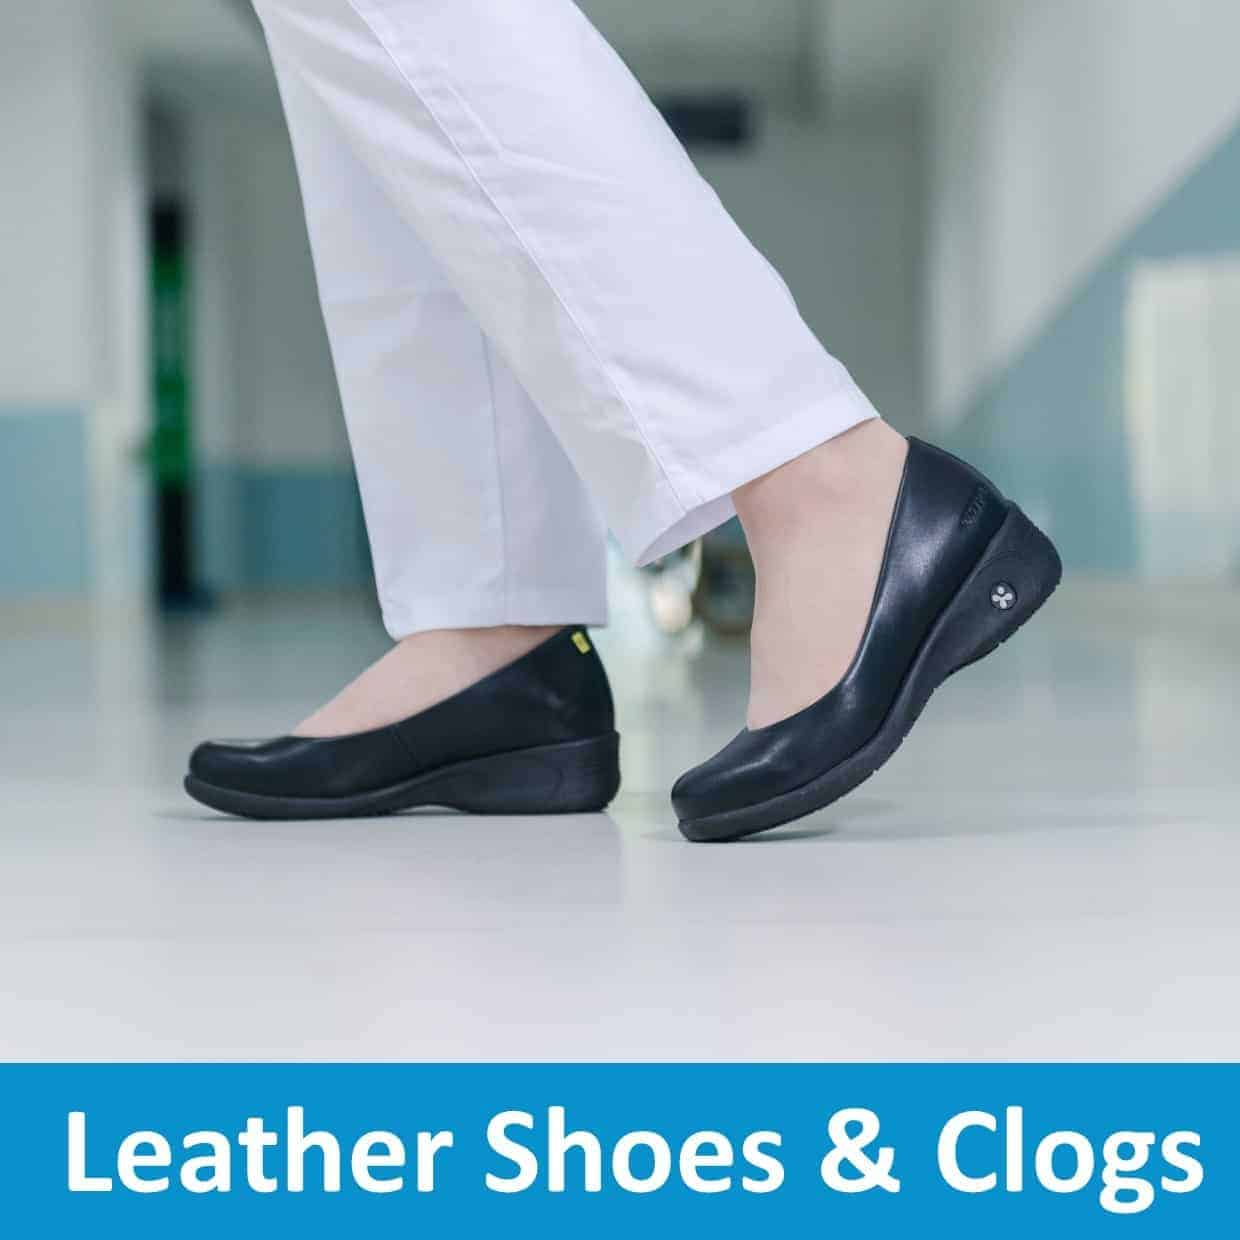 Leather Shoes & Clogs